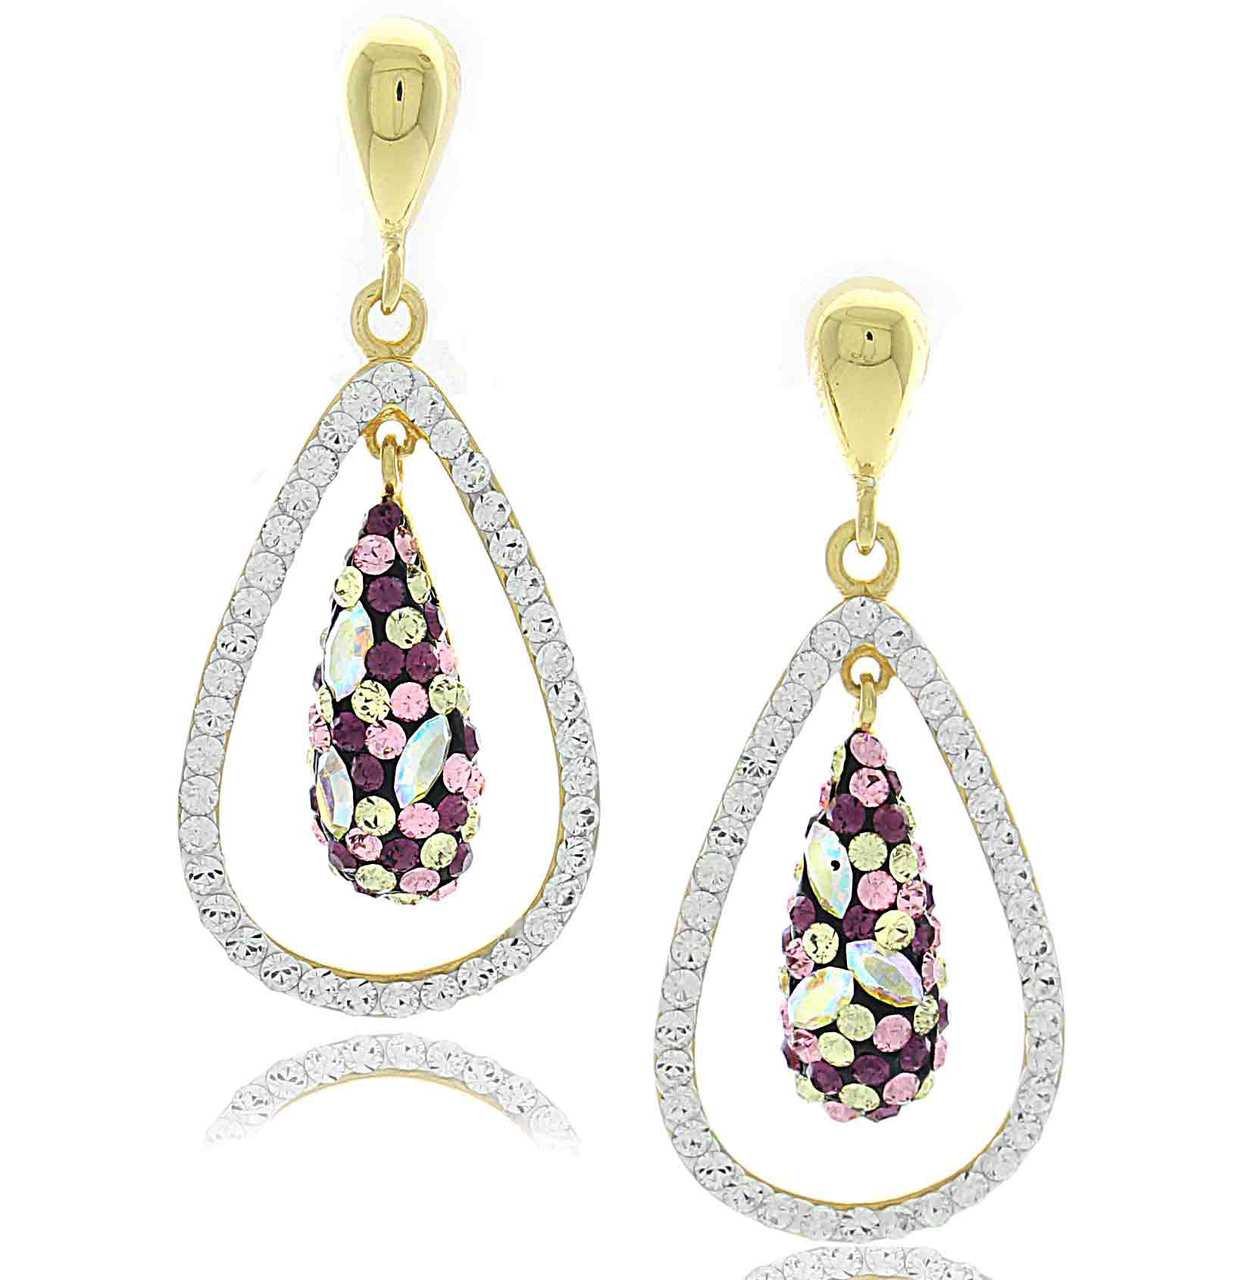 Swarovski Element Crystal Pear Drop Pave Earrings - Artune Jewelry Online c45798b69e